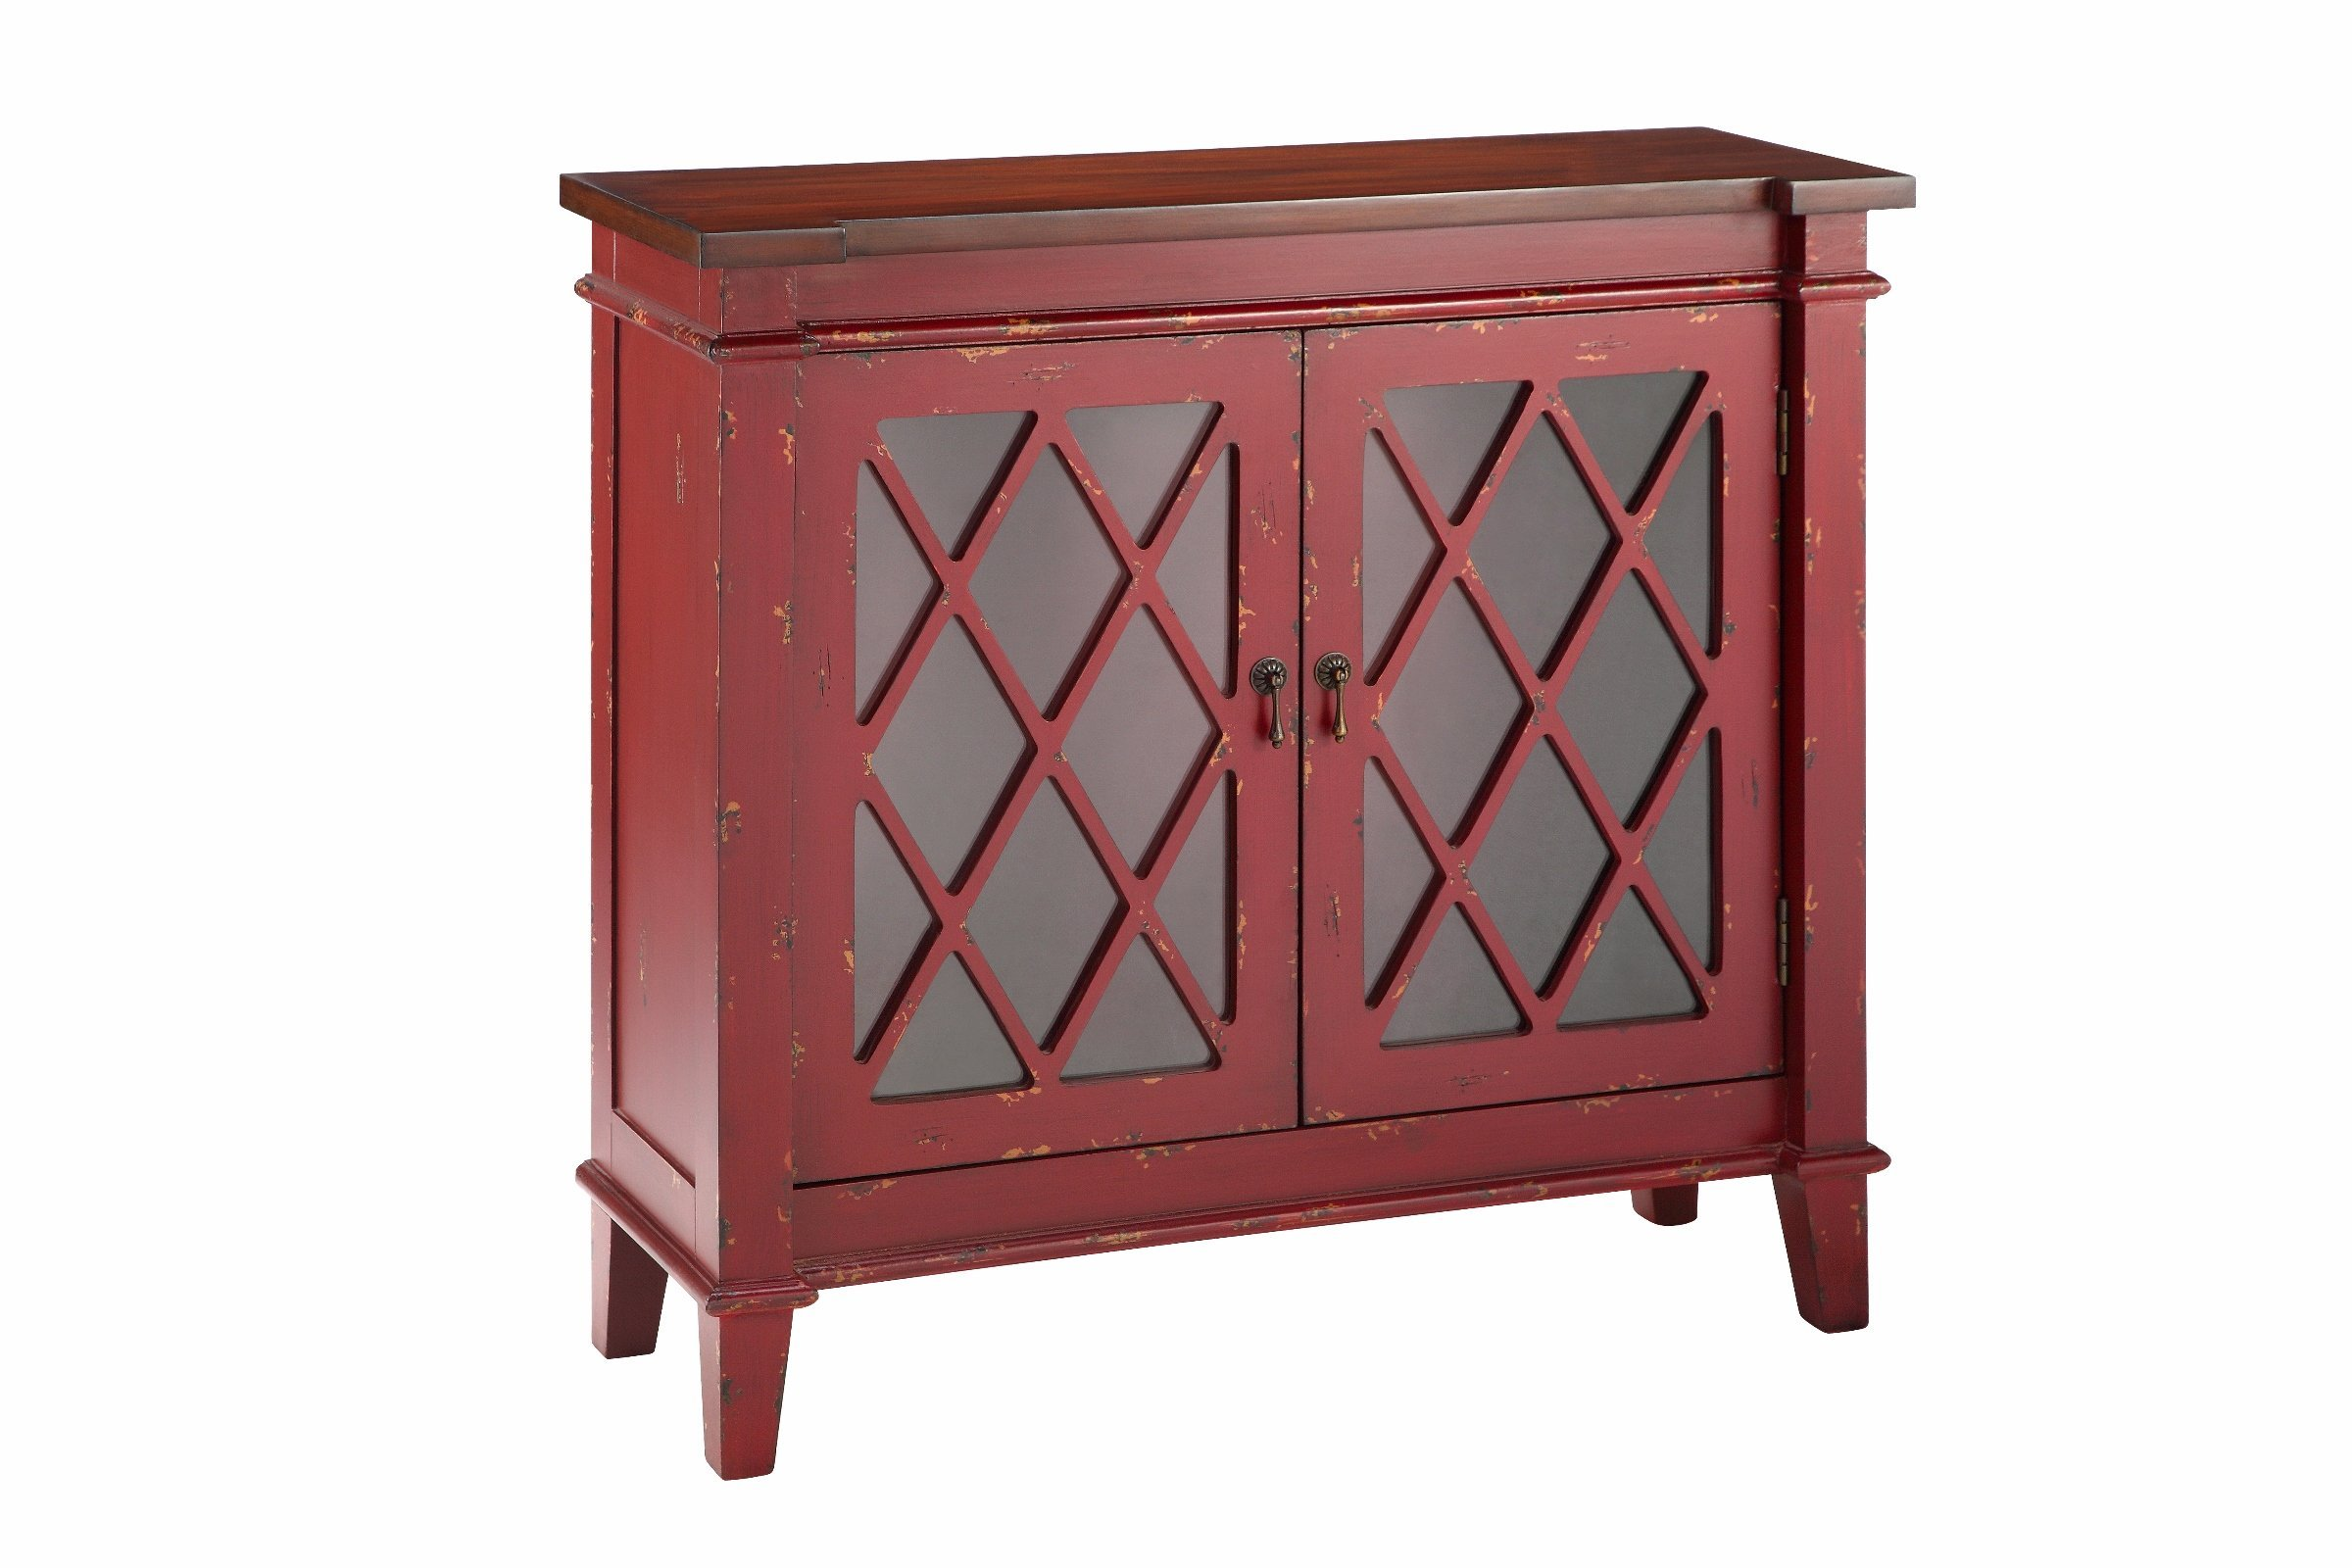 Stein World Furniture 2-Glass Door Cabinet, Red